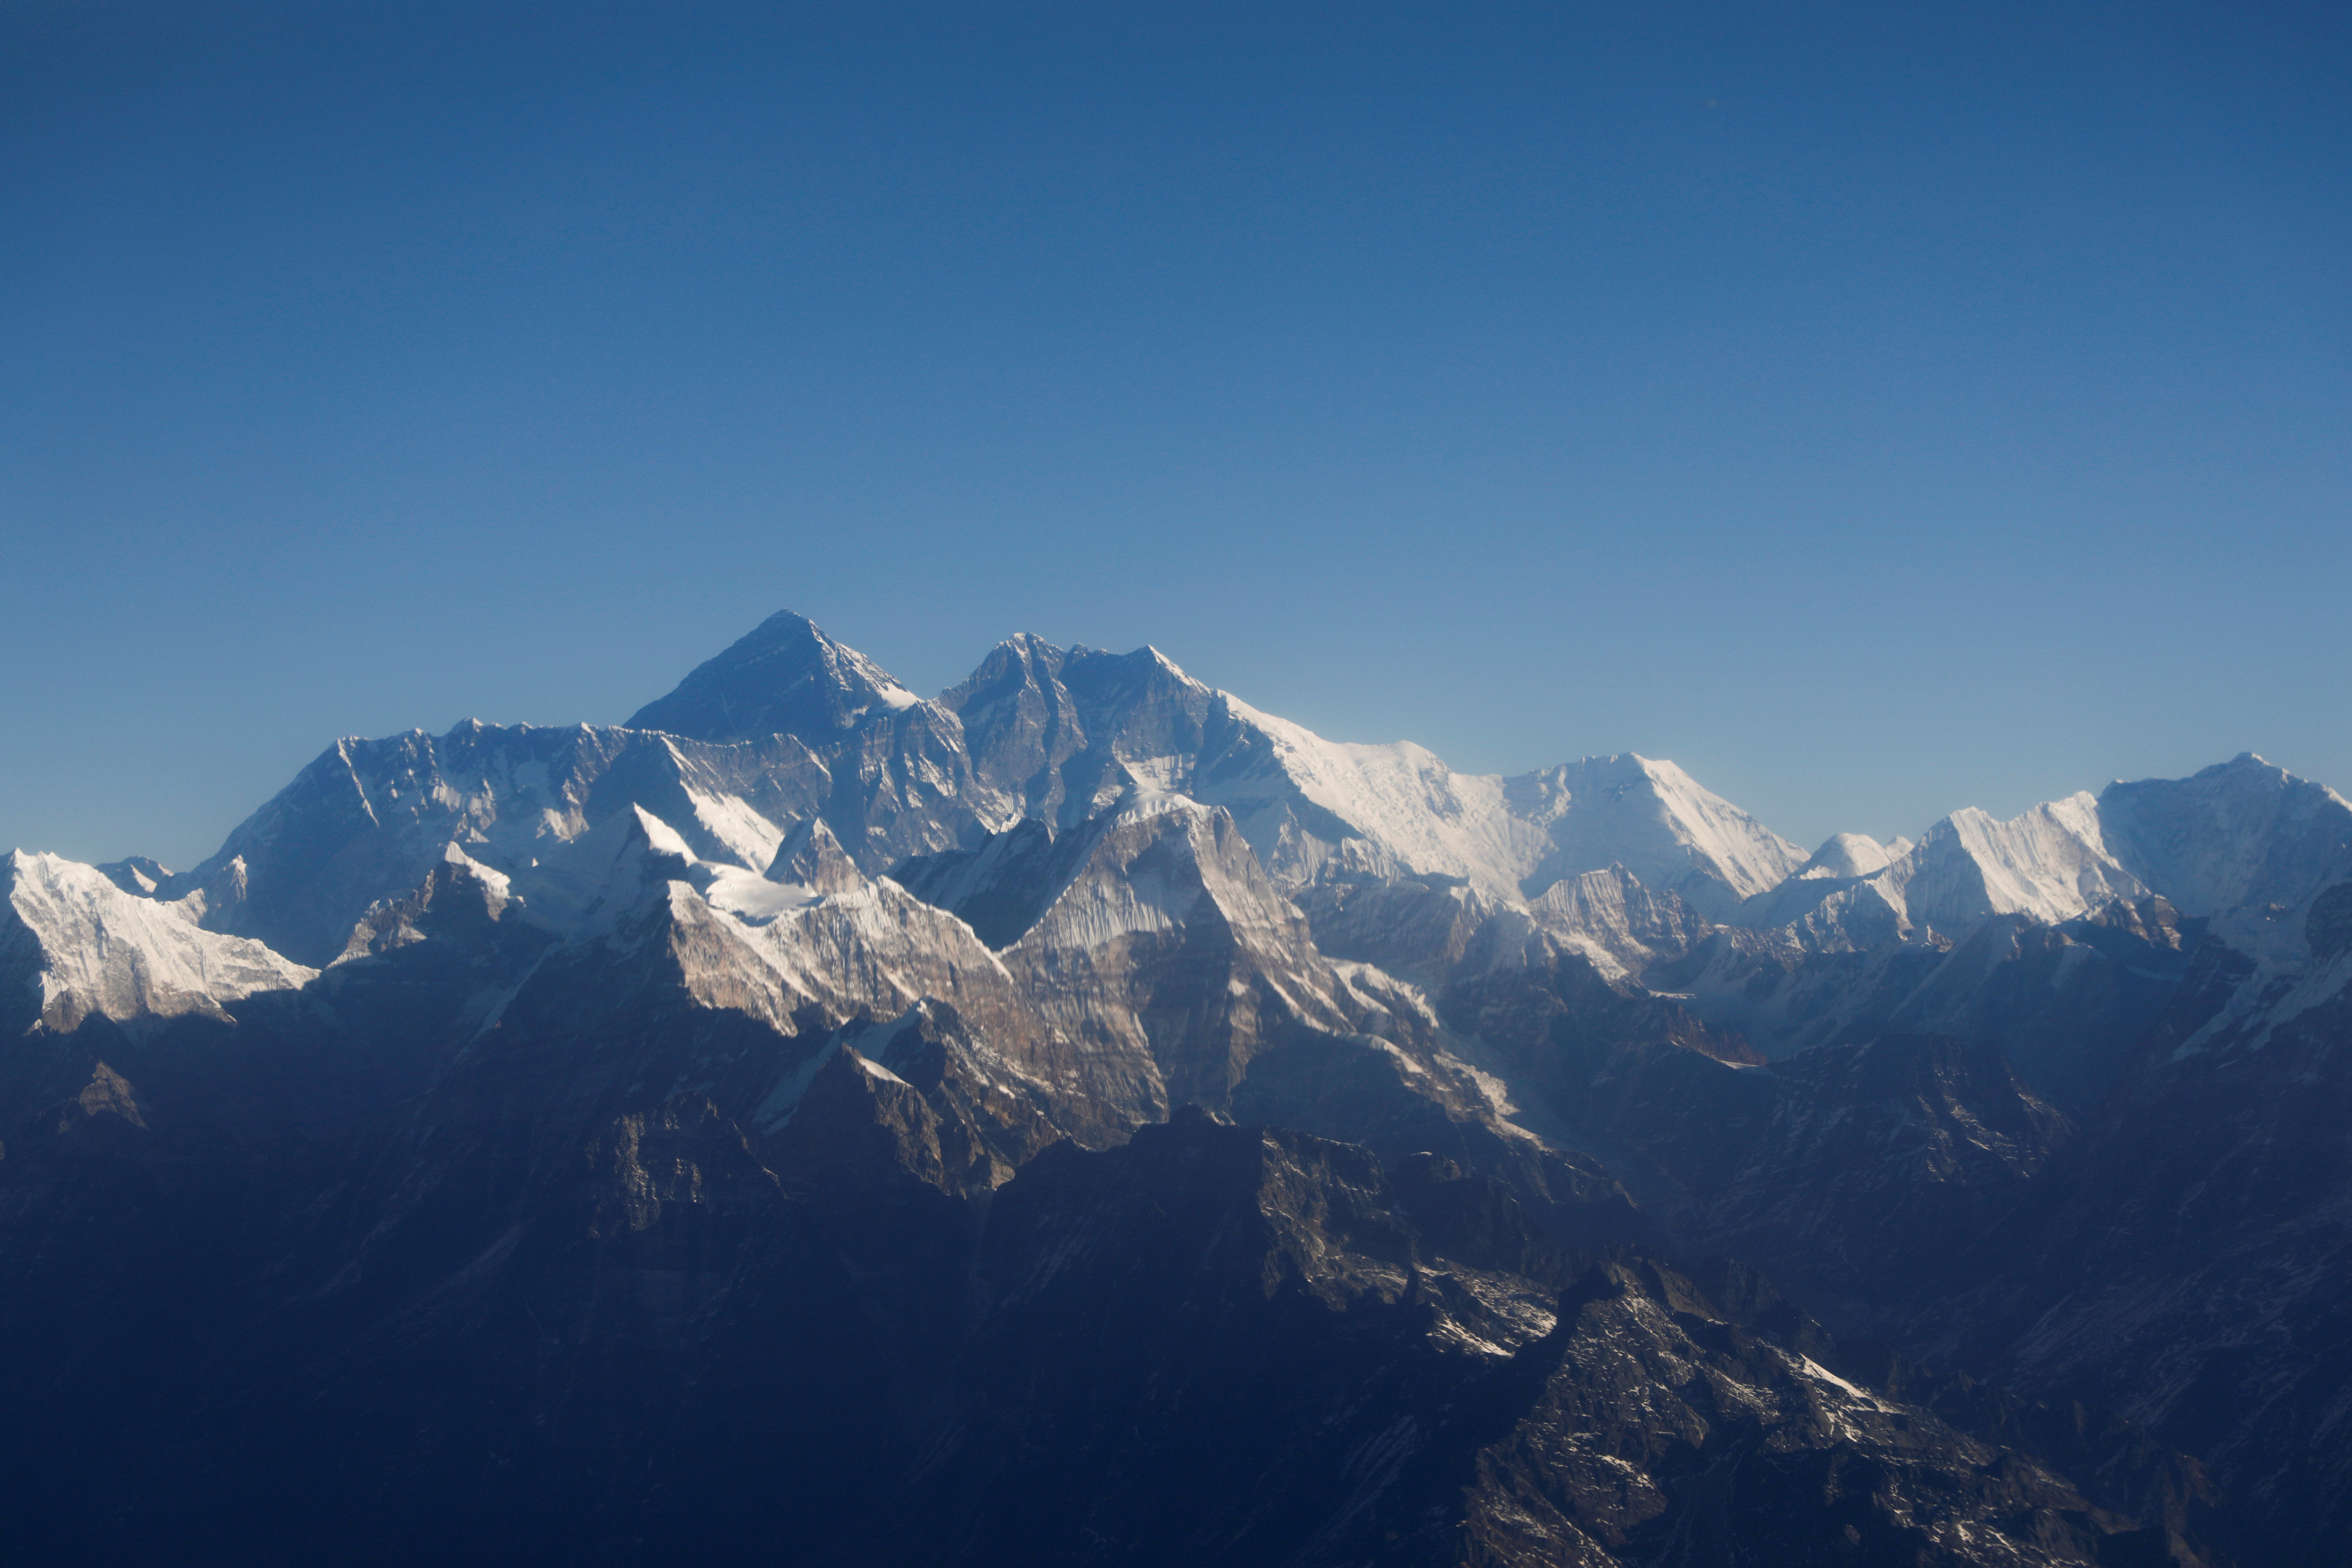 Mount Everest, the world highest peak, and other peaks of the Himalayan range are seen through an aircraft window during a mountain flight from Kathmandu, Nepal January 15, 2020. REUTERS/Monika Deupala/File Photo